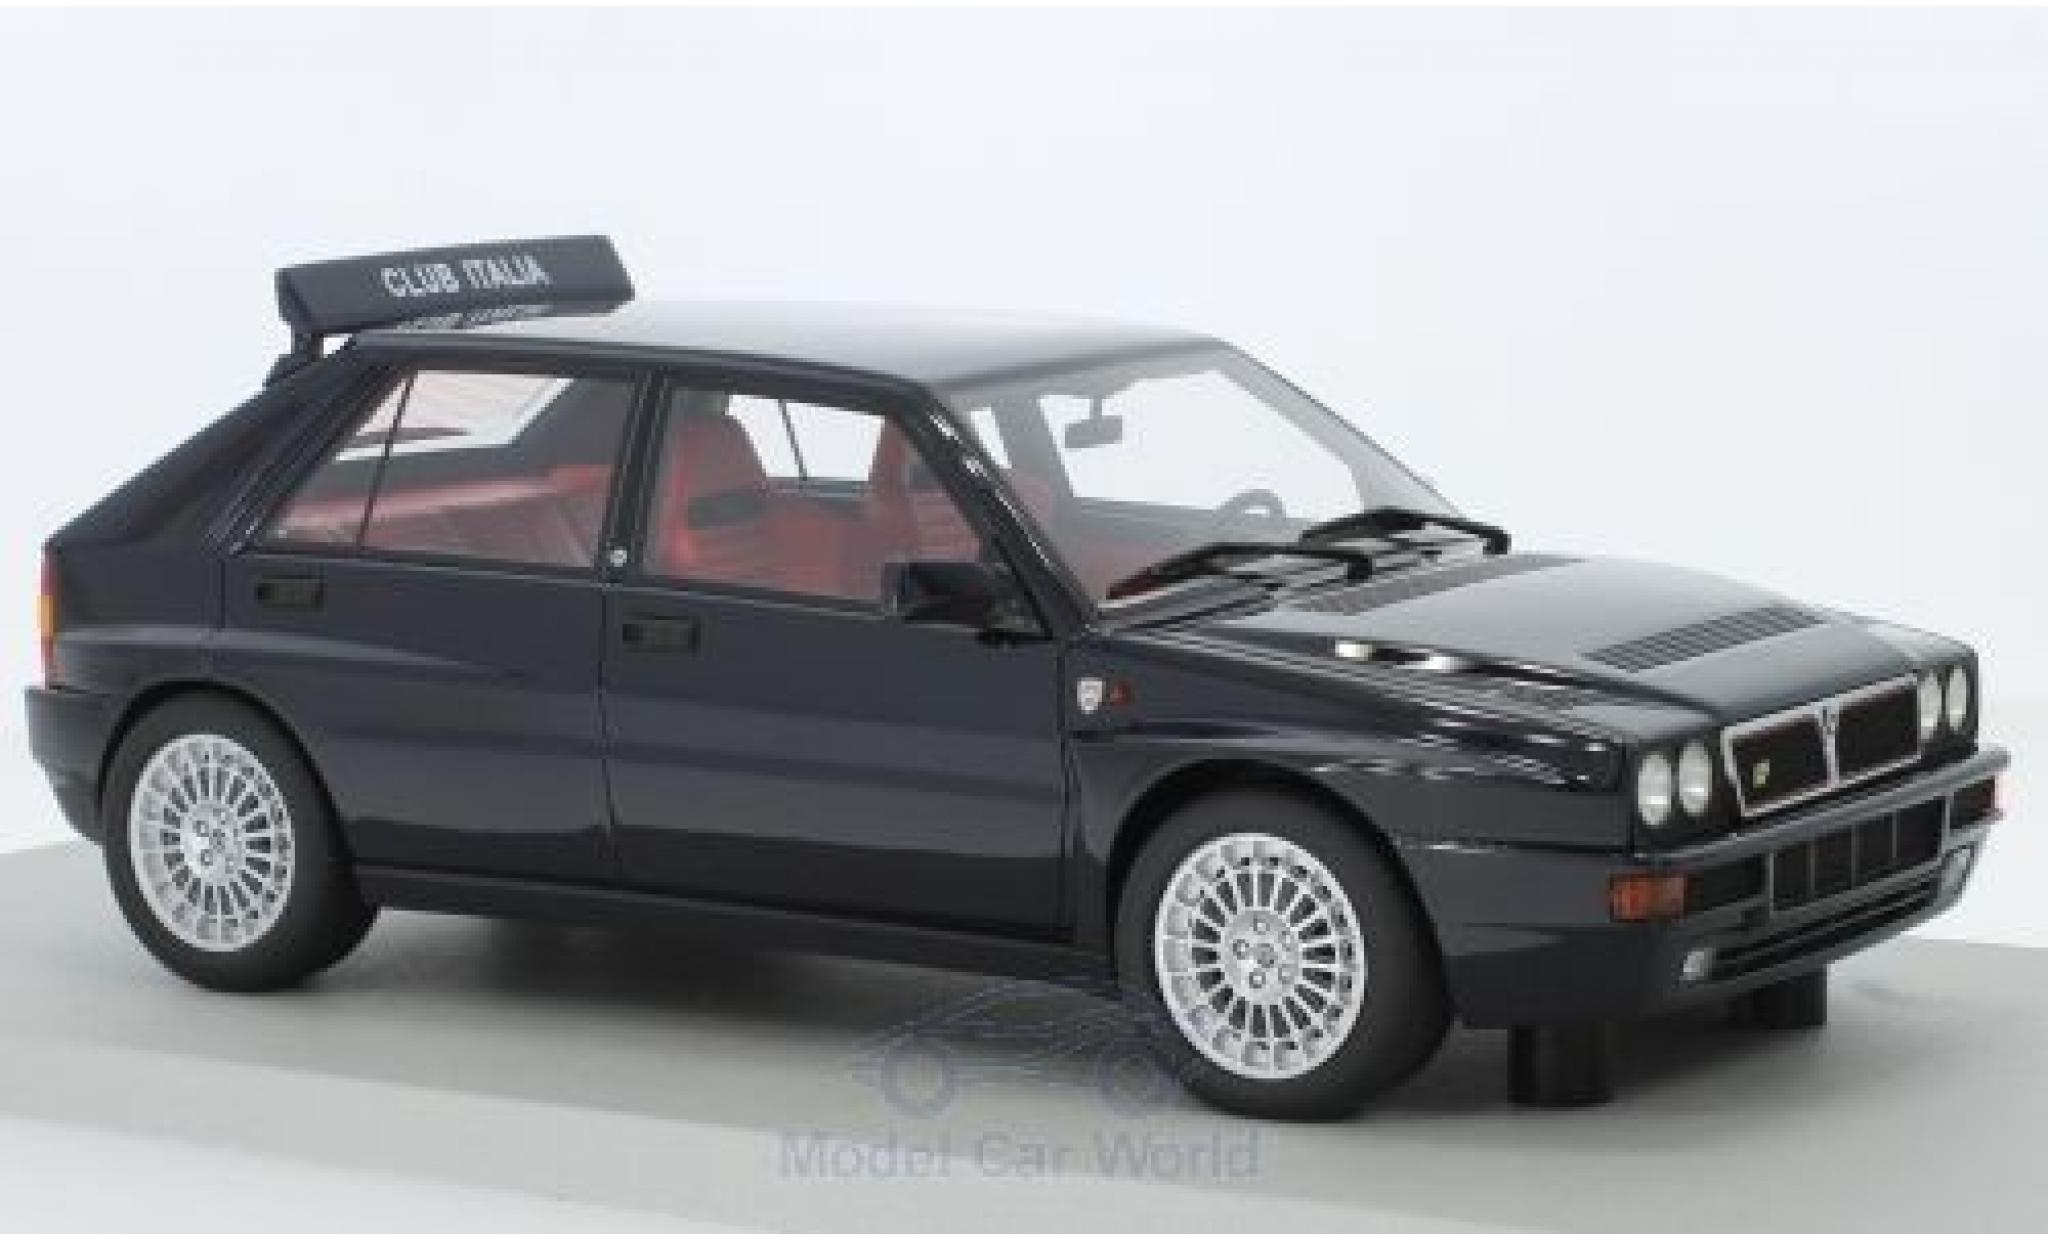 Lancia Delta 1/18 Lucky Step Models Integrale Evolutione Club Italia schwarz